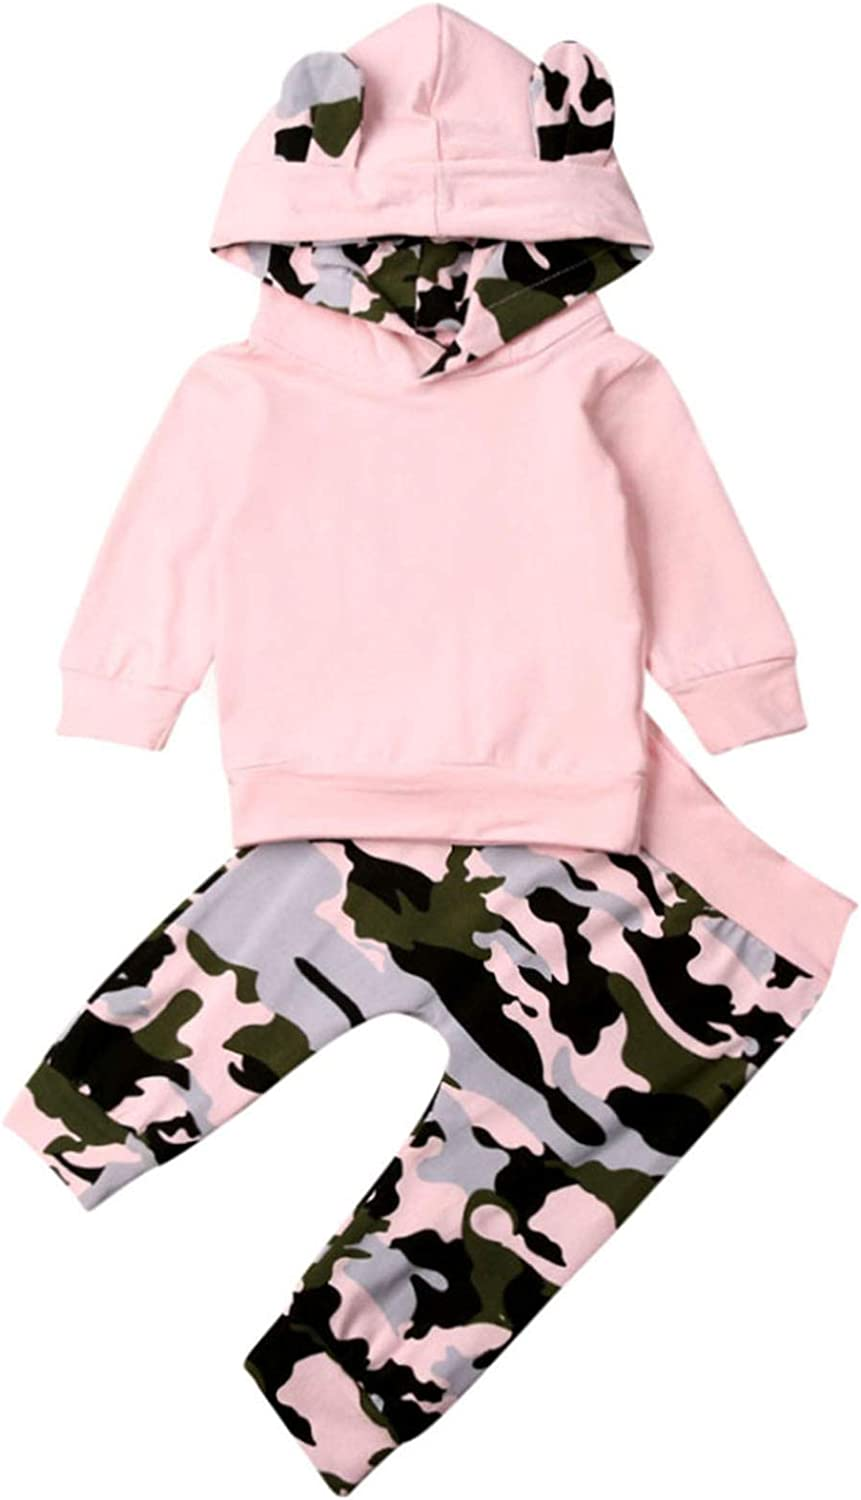 Baby Girls Solid Color Hooded Sweatshirt with Ear Pullover Sweater Camouflage Pant Leggings Tracksuit Outfits